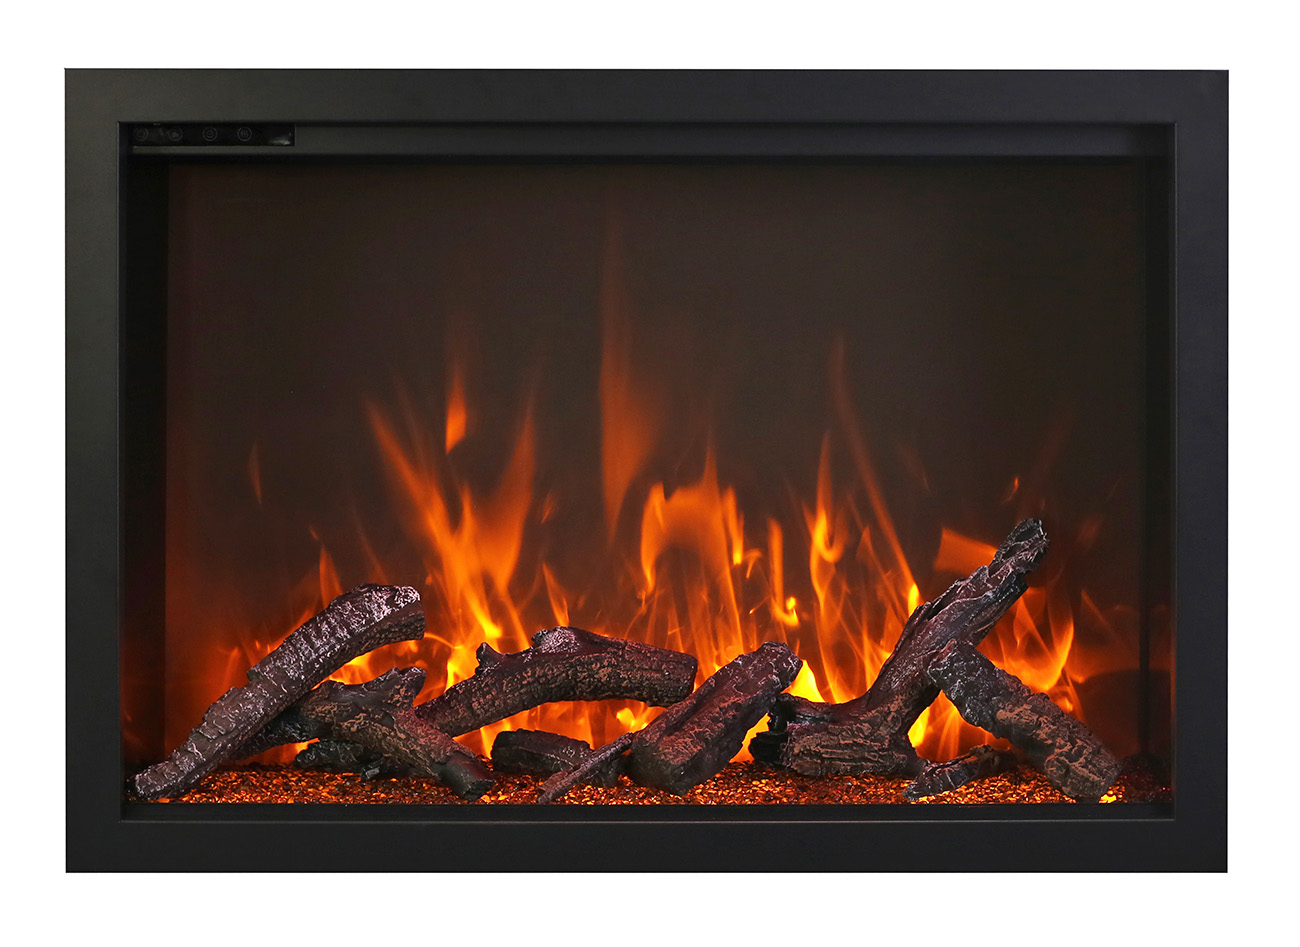 TRD-38-with-Oak-Log-yellow-flame